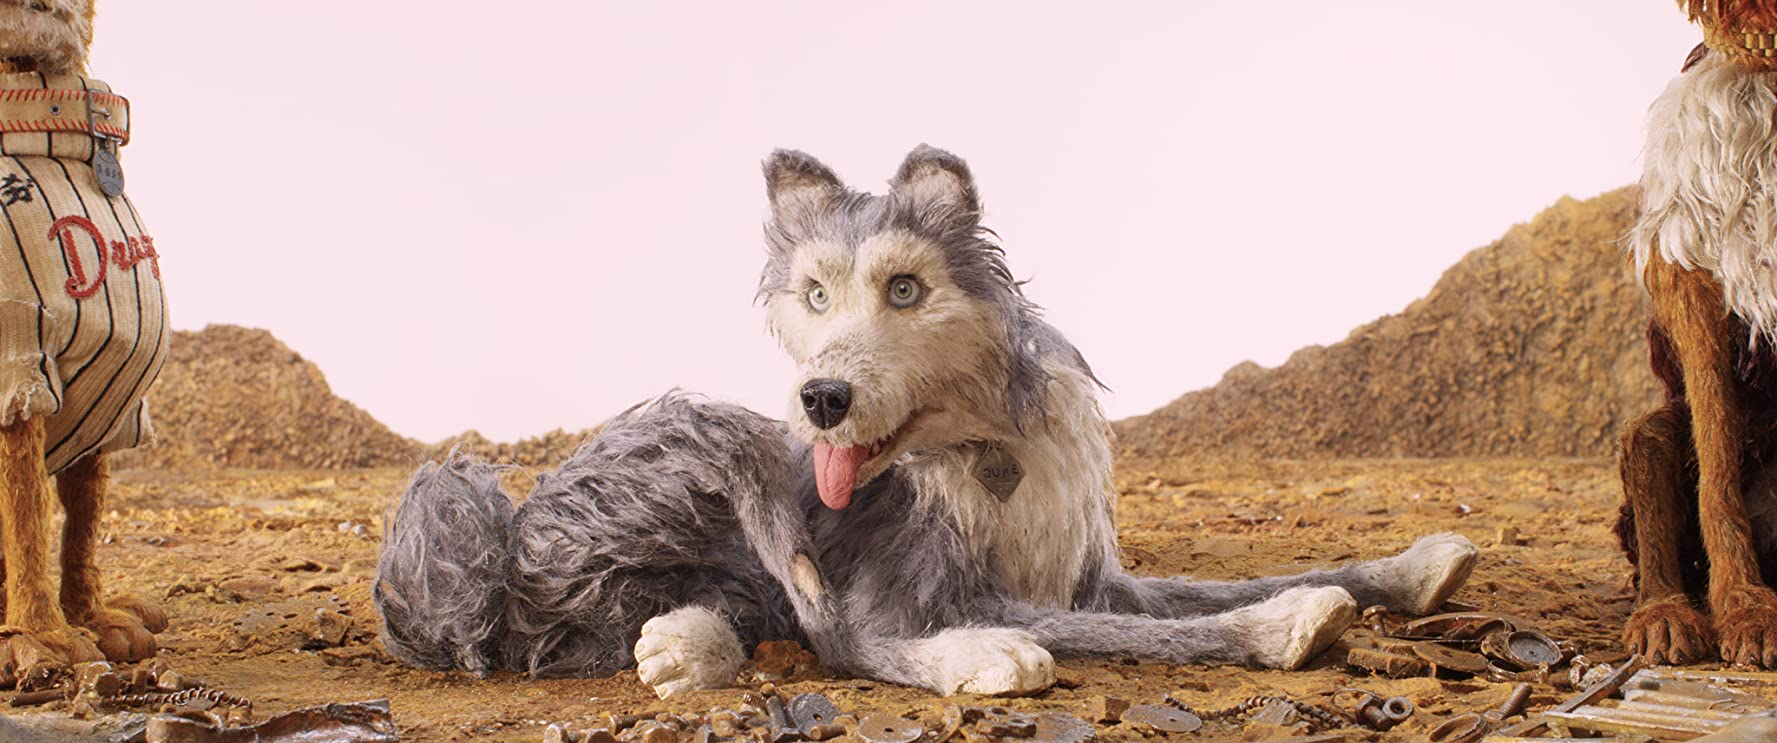 Jeff Goldblum in Isle of Dogs (2018)